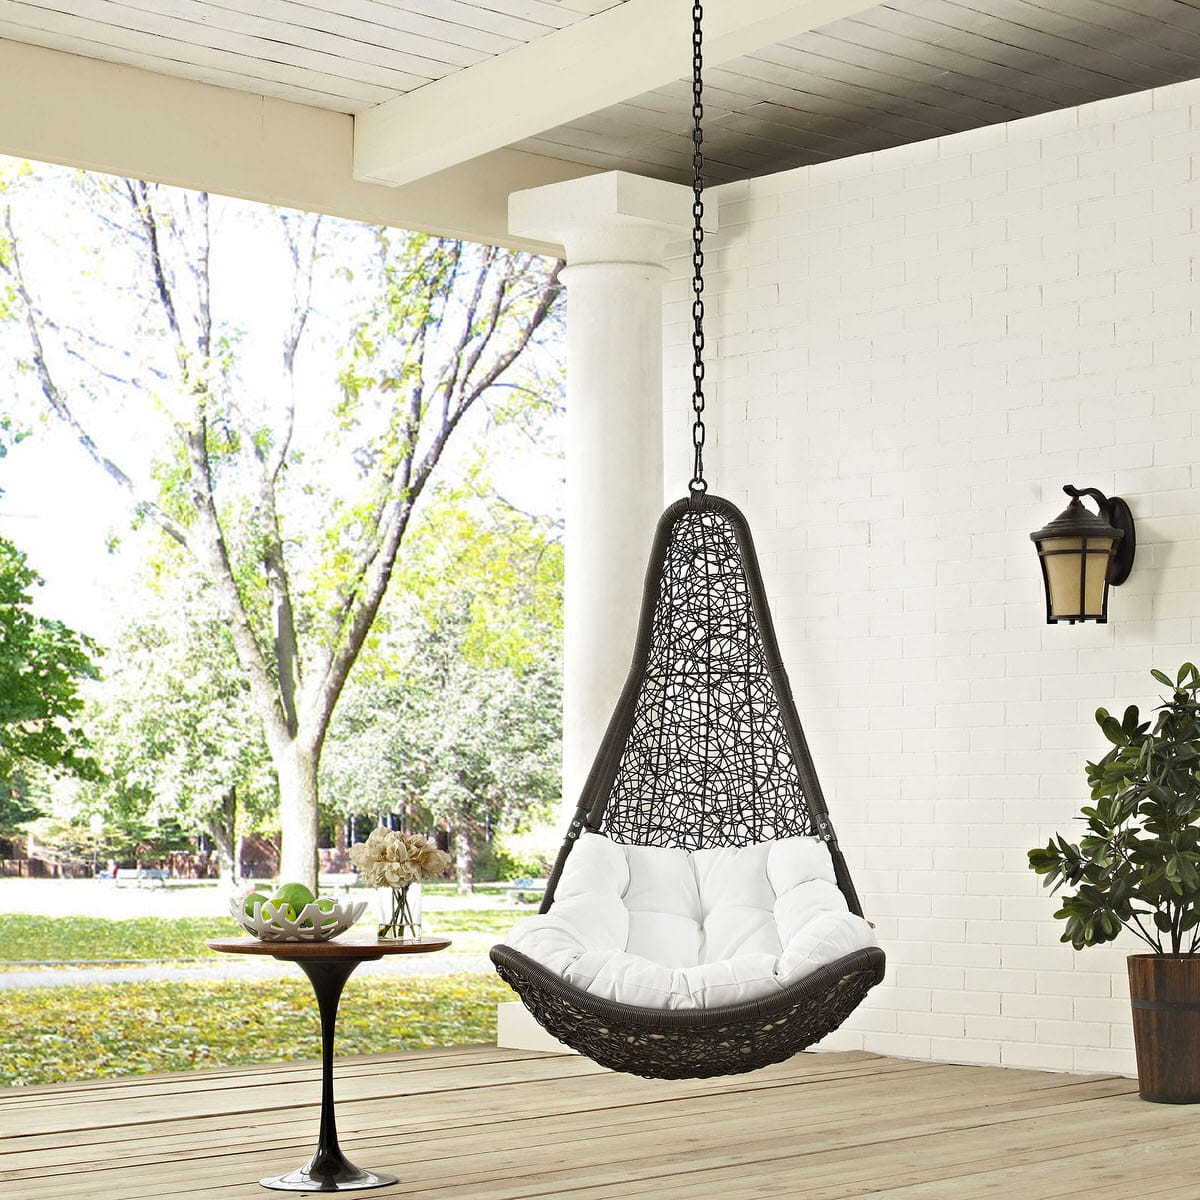 Abate Outdoor Patio Swing Chair Without Stand Gray White By Modern Living